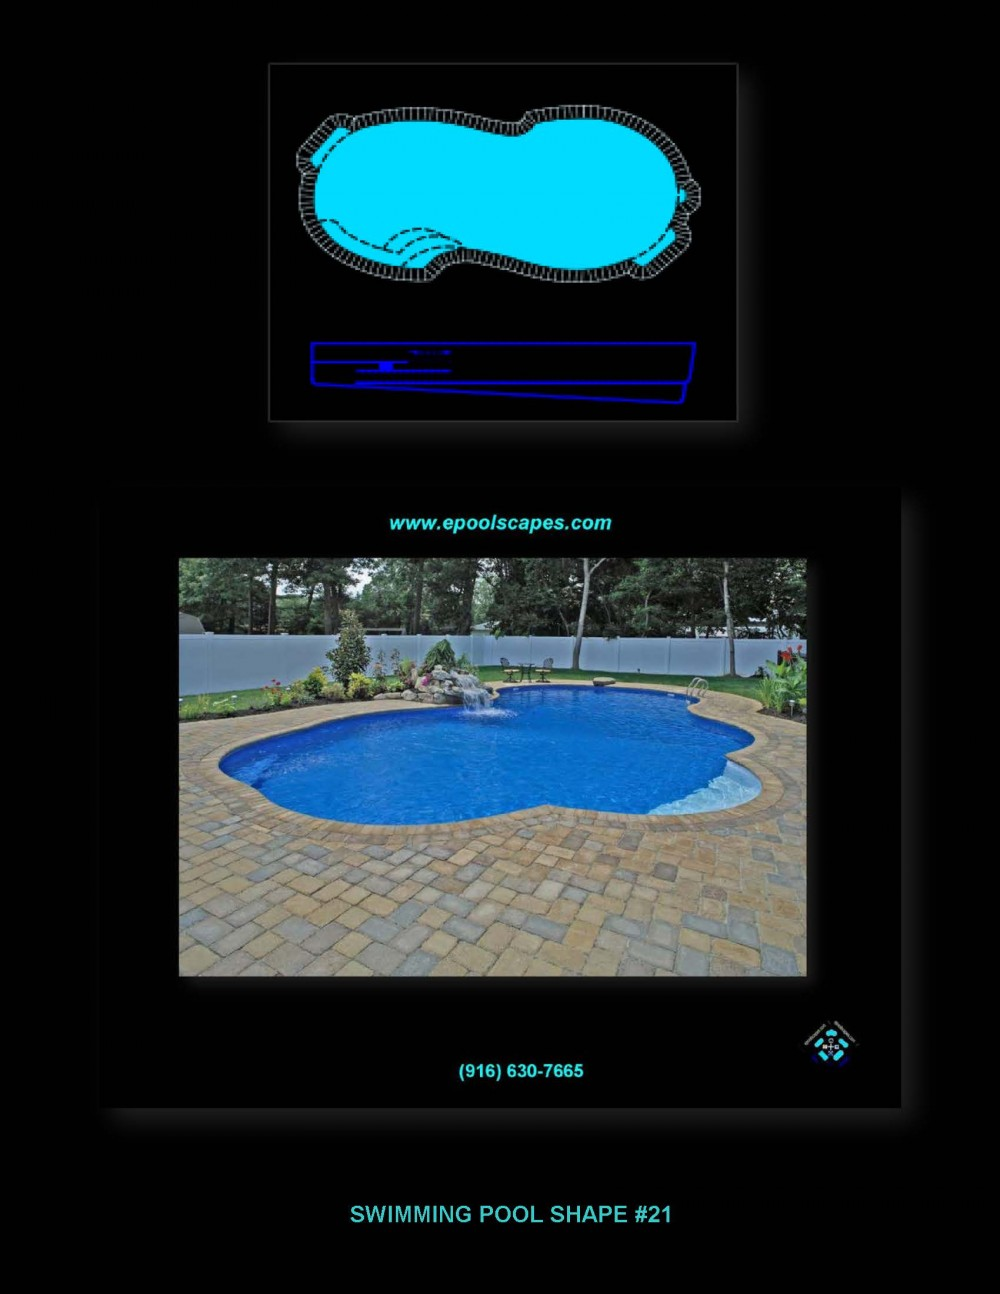 Pool Shape #21